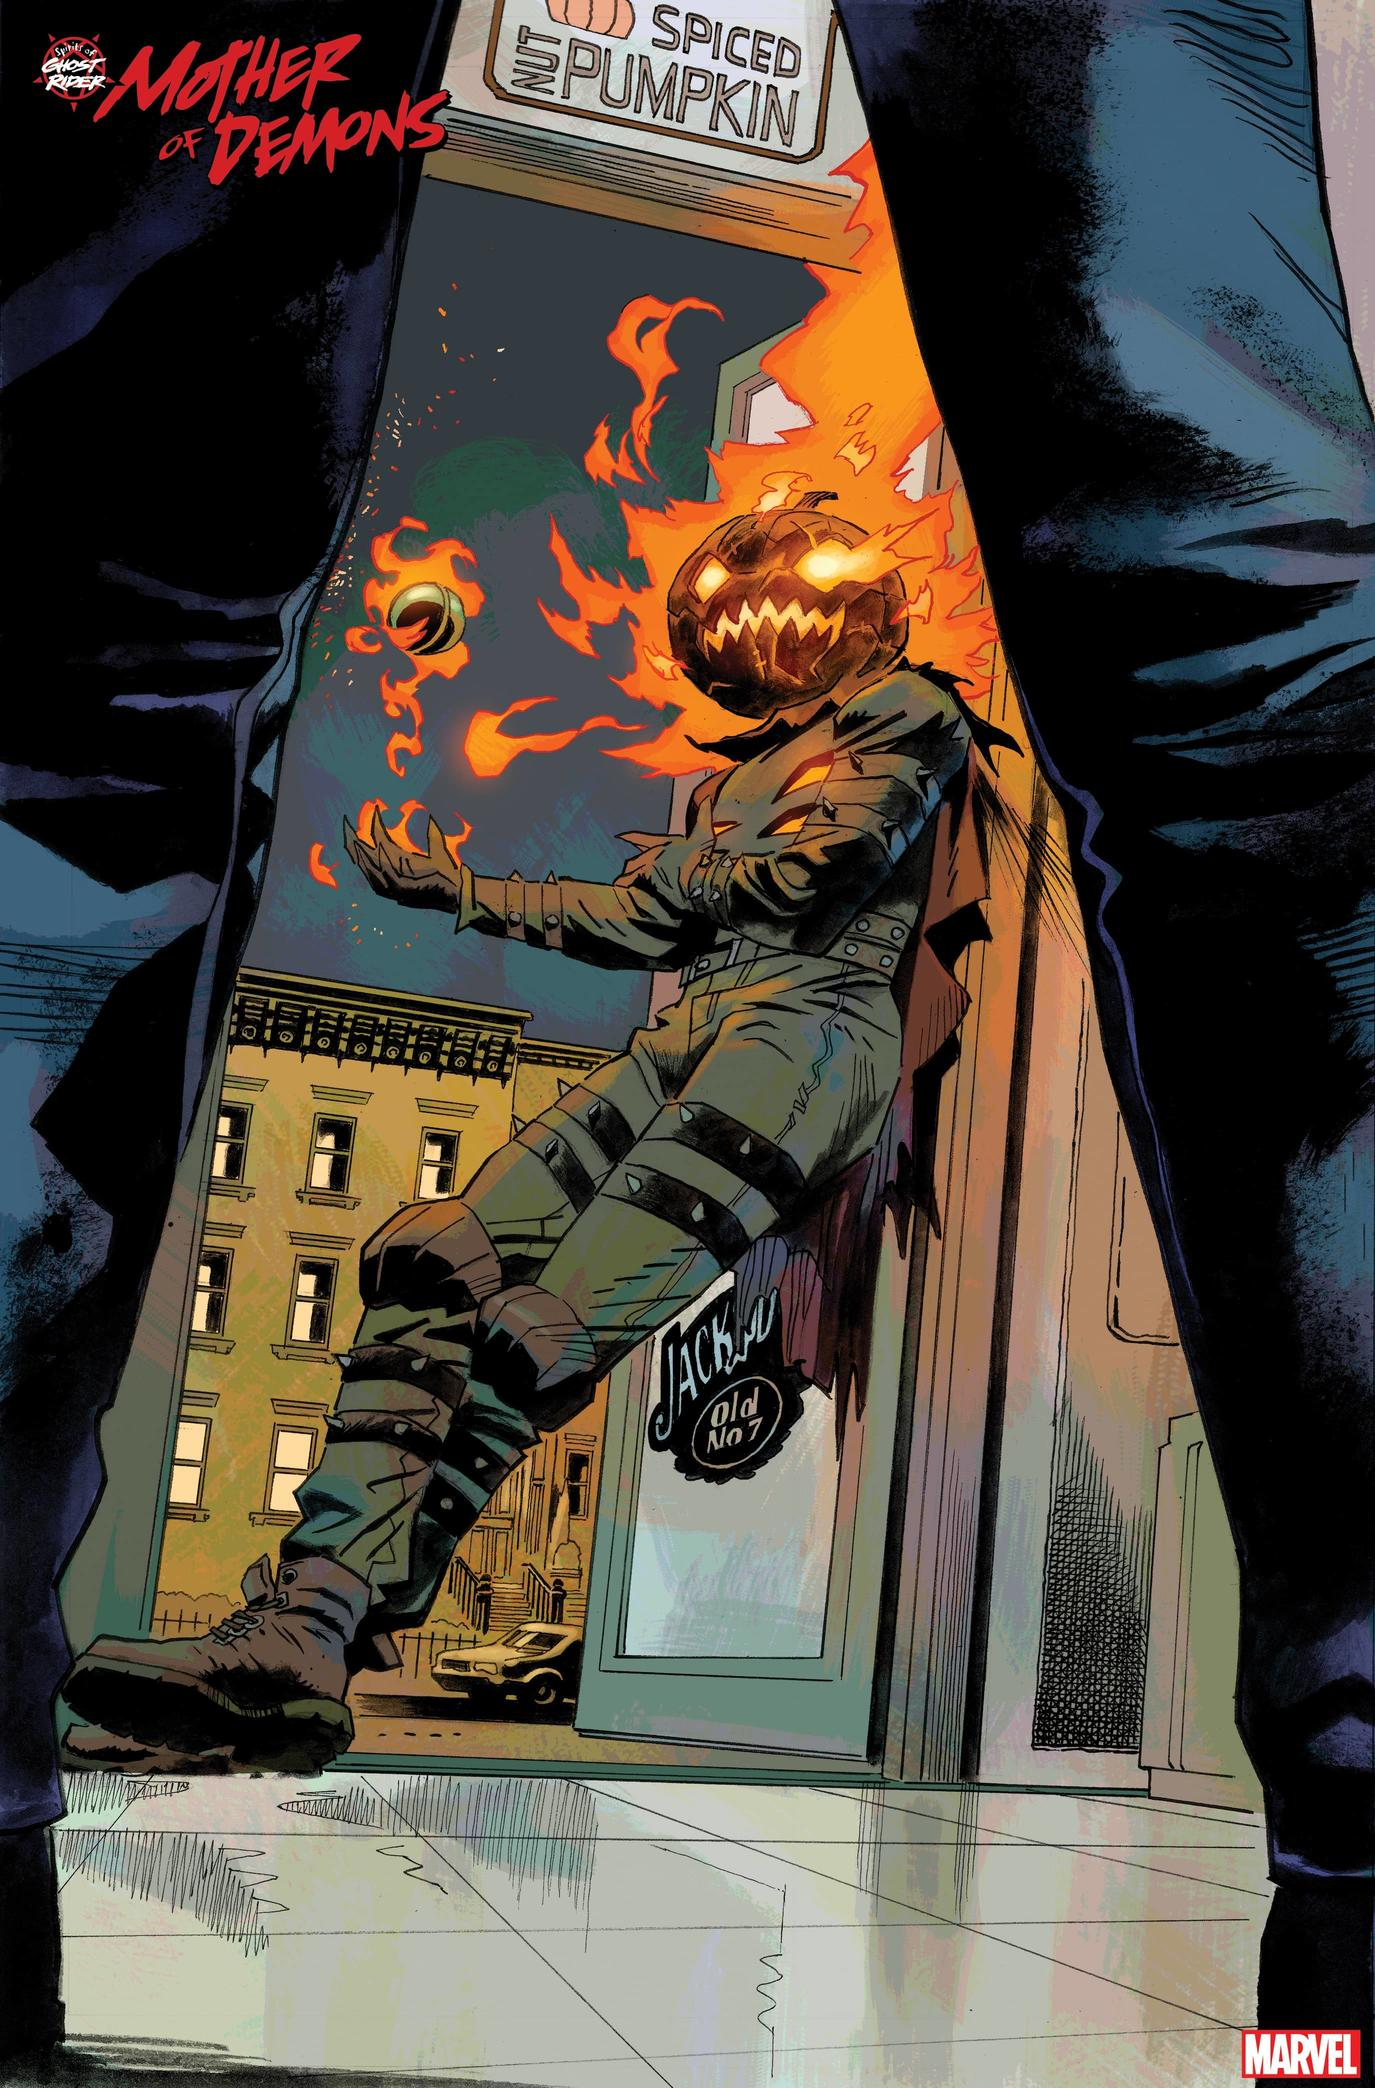 SPIRITS OF GHOST RIDER: MOTHER OF DEMONS #1 preview art by Roland Boschi and Dan Brown